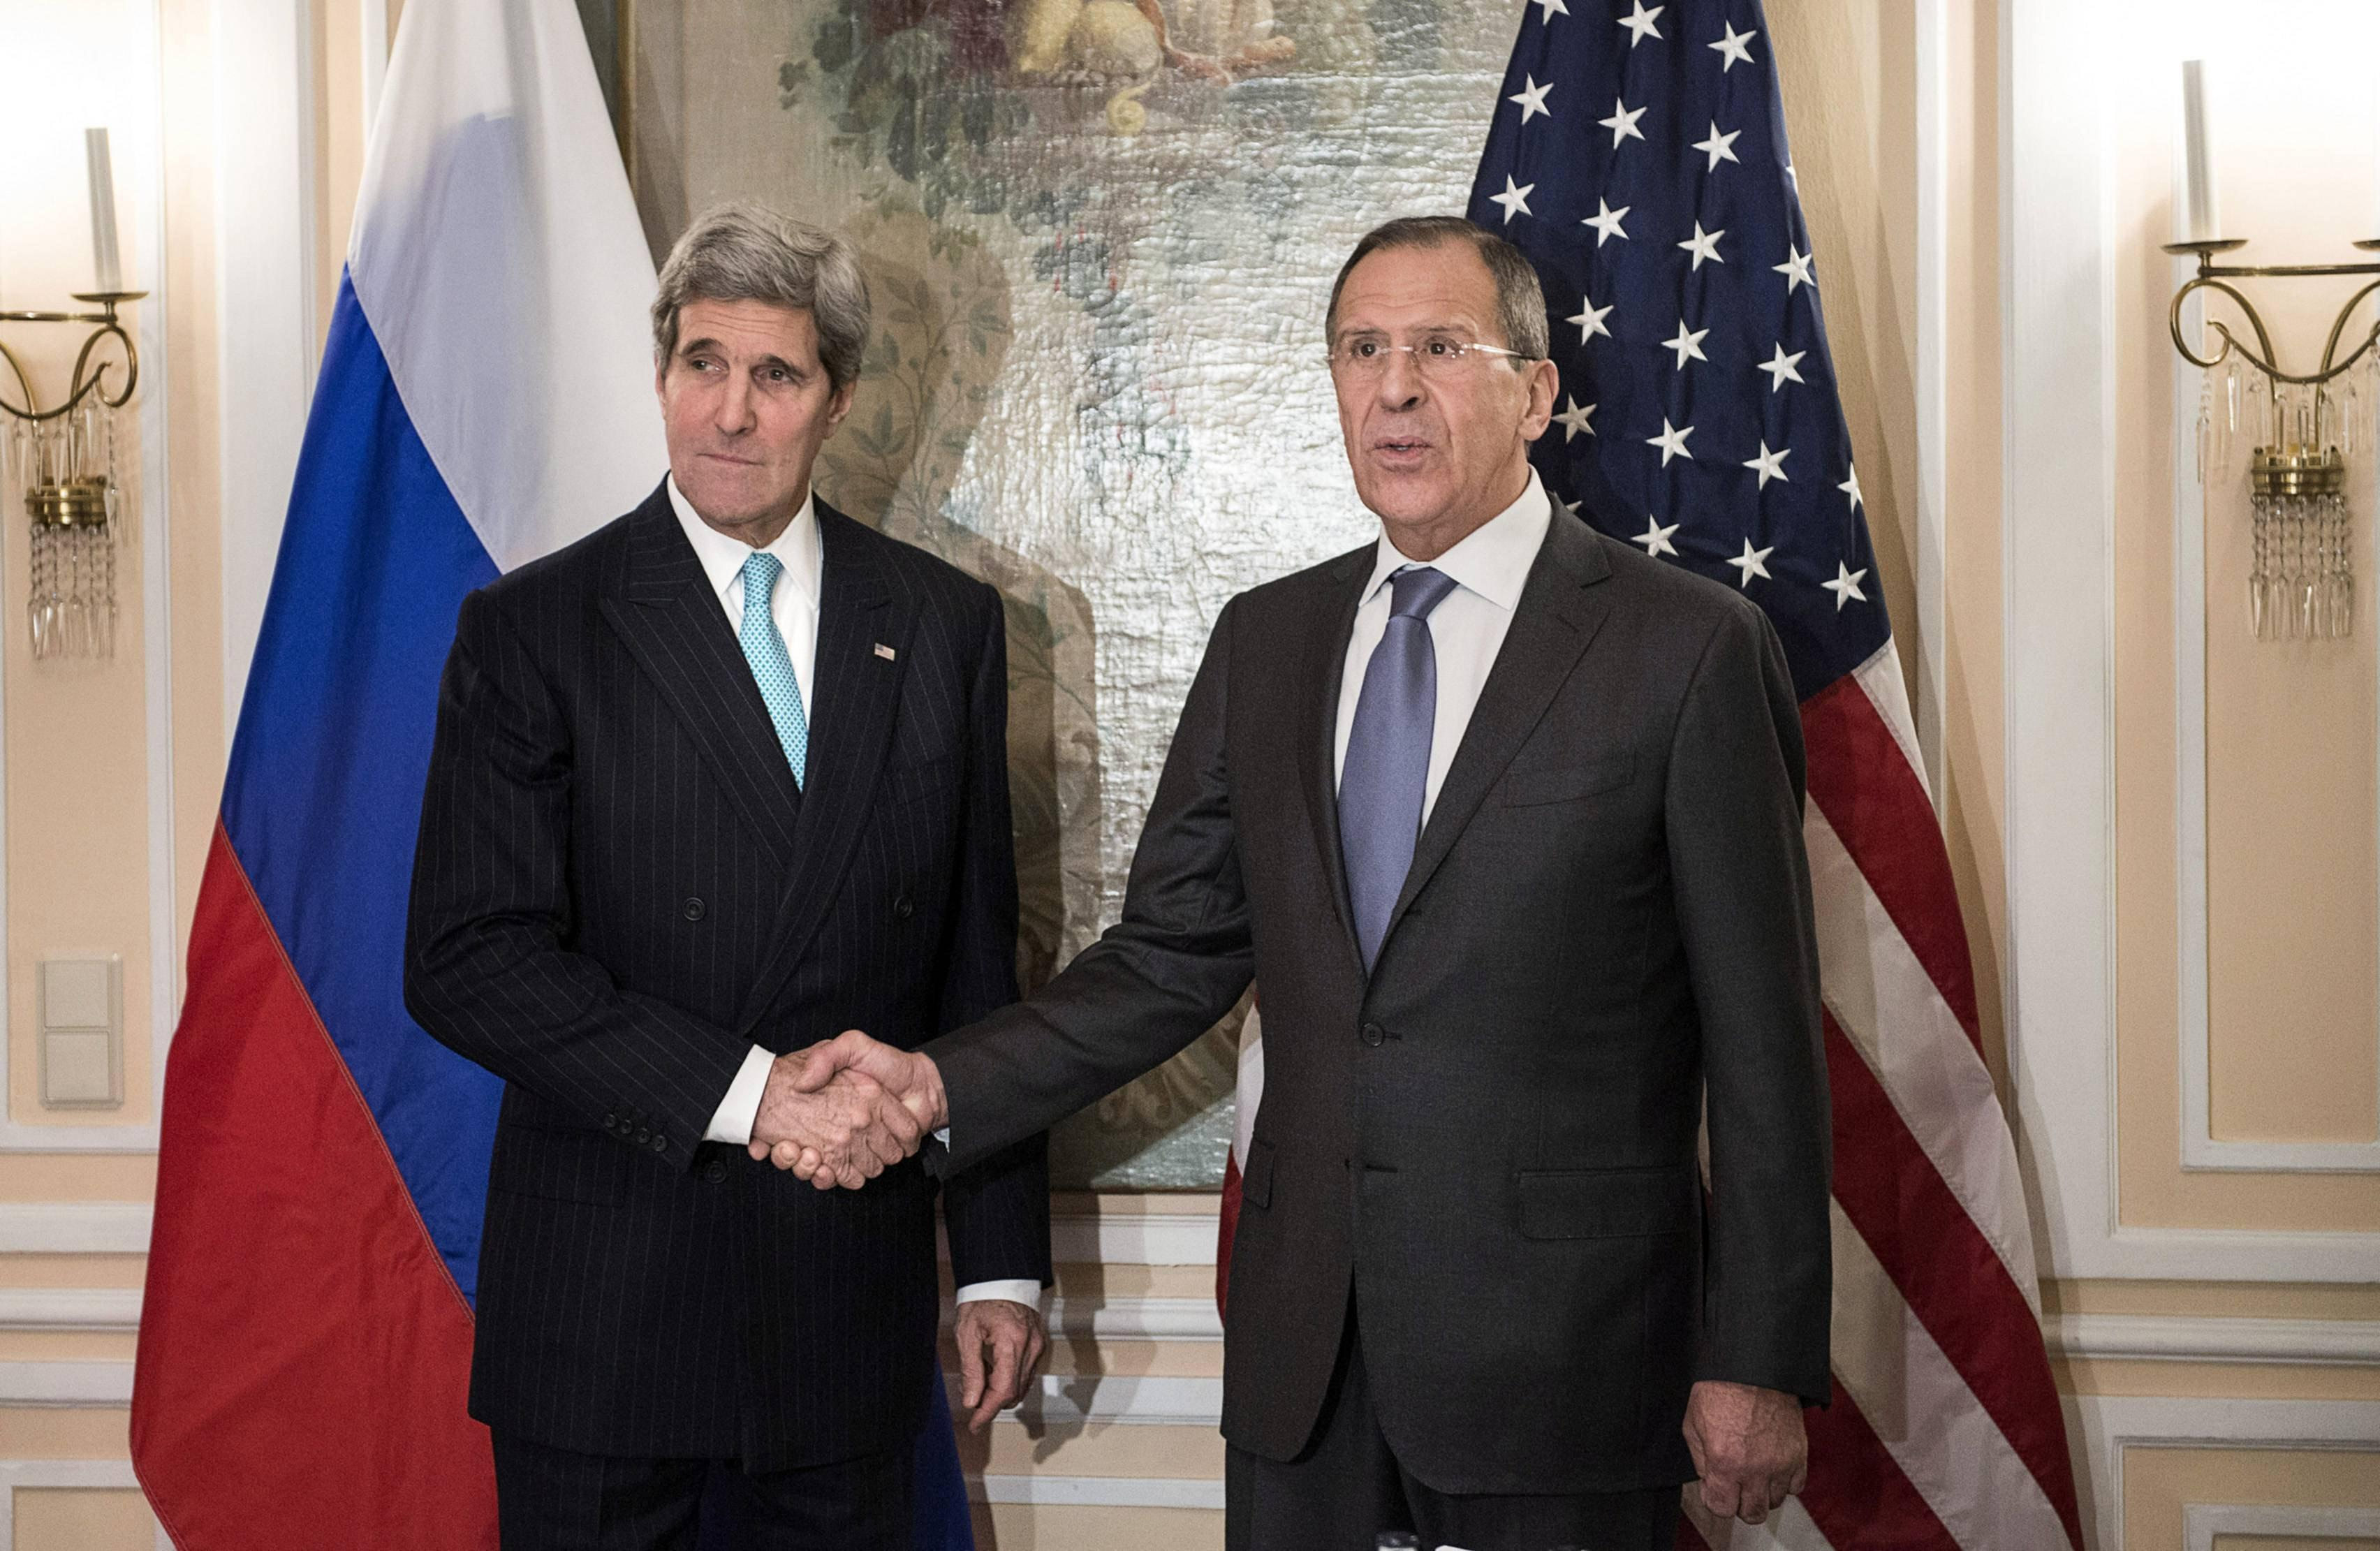 Image: U.S. Secretary of State John Kerry and Russian Foreign Minister Sergei Lavrov shake hands